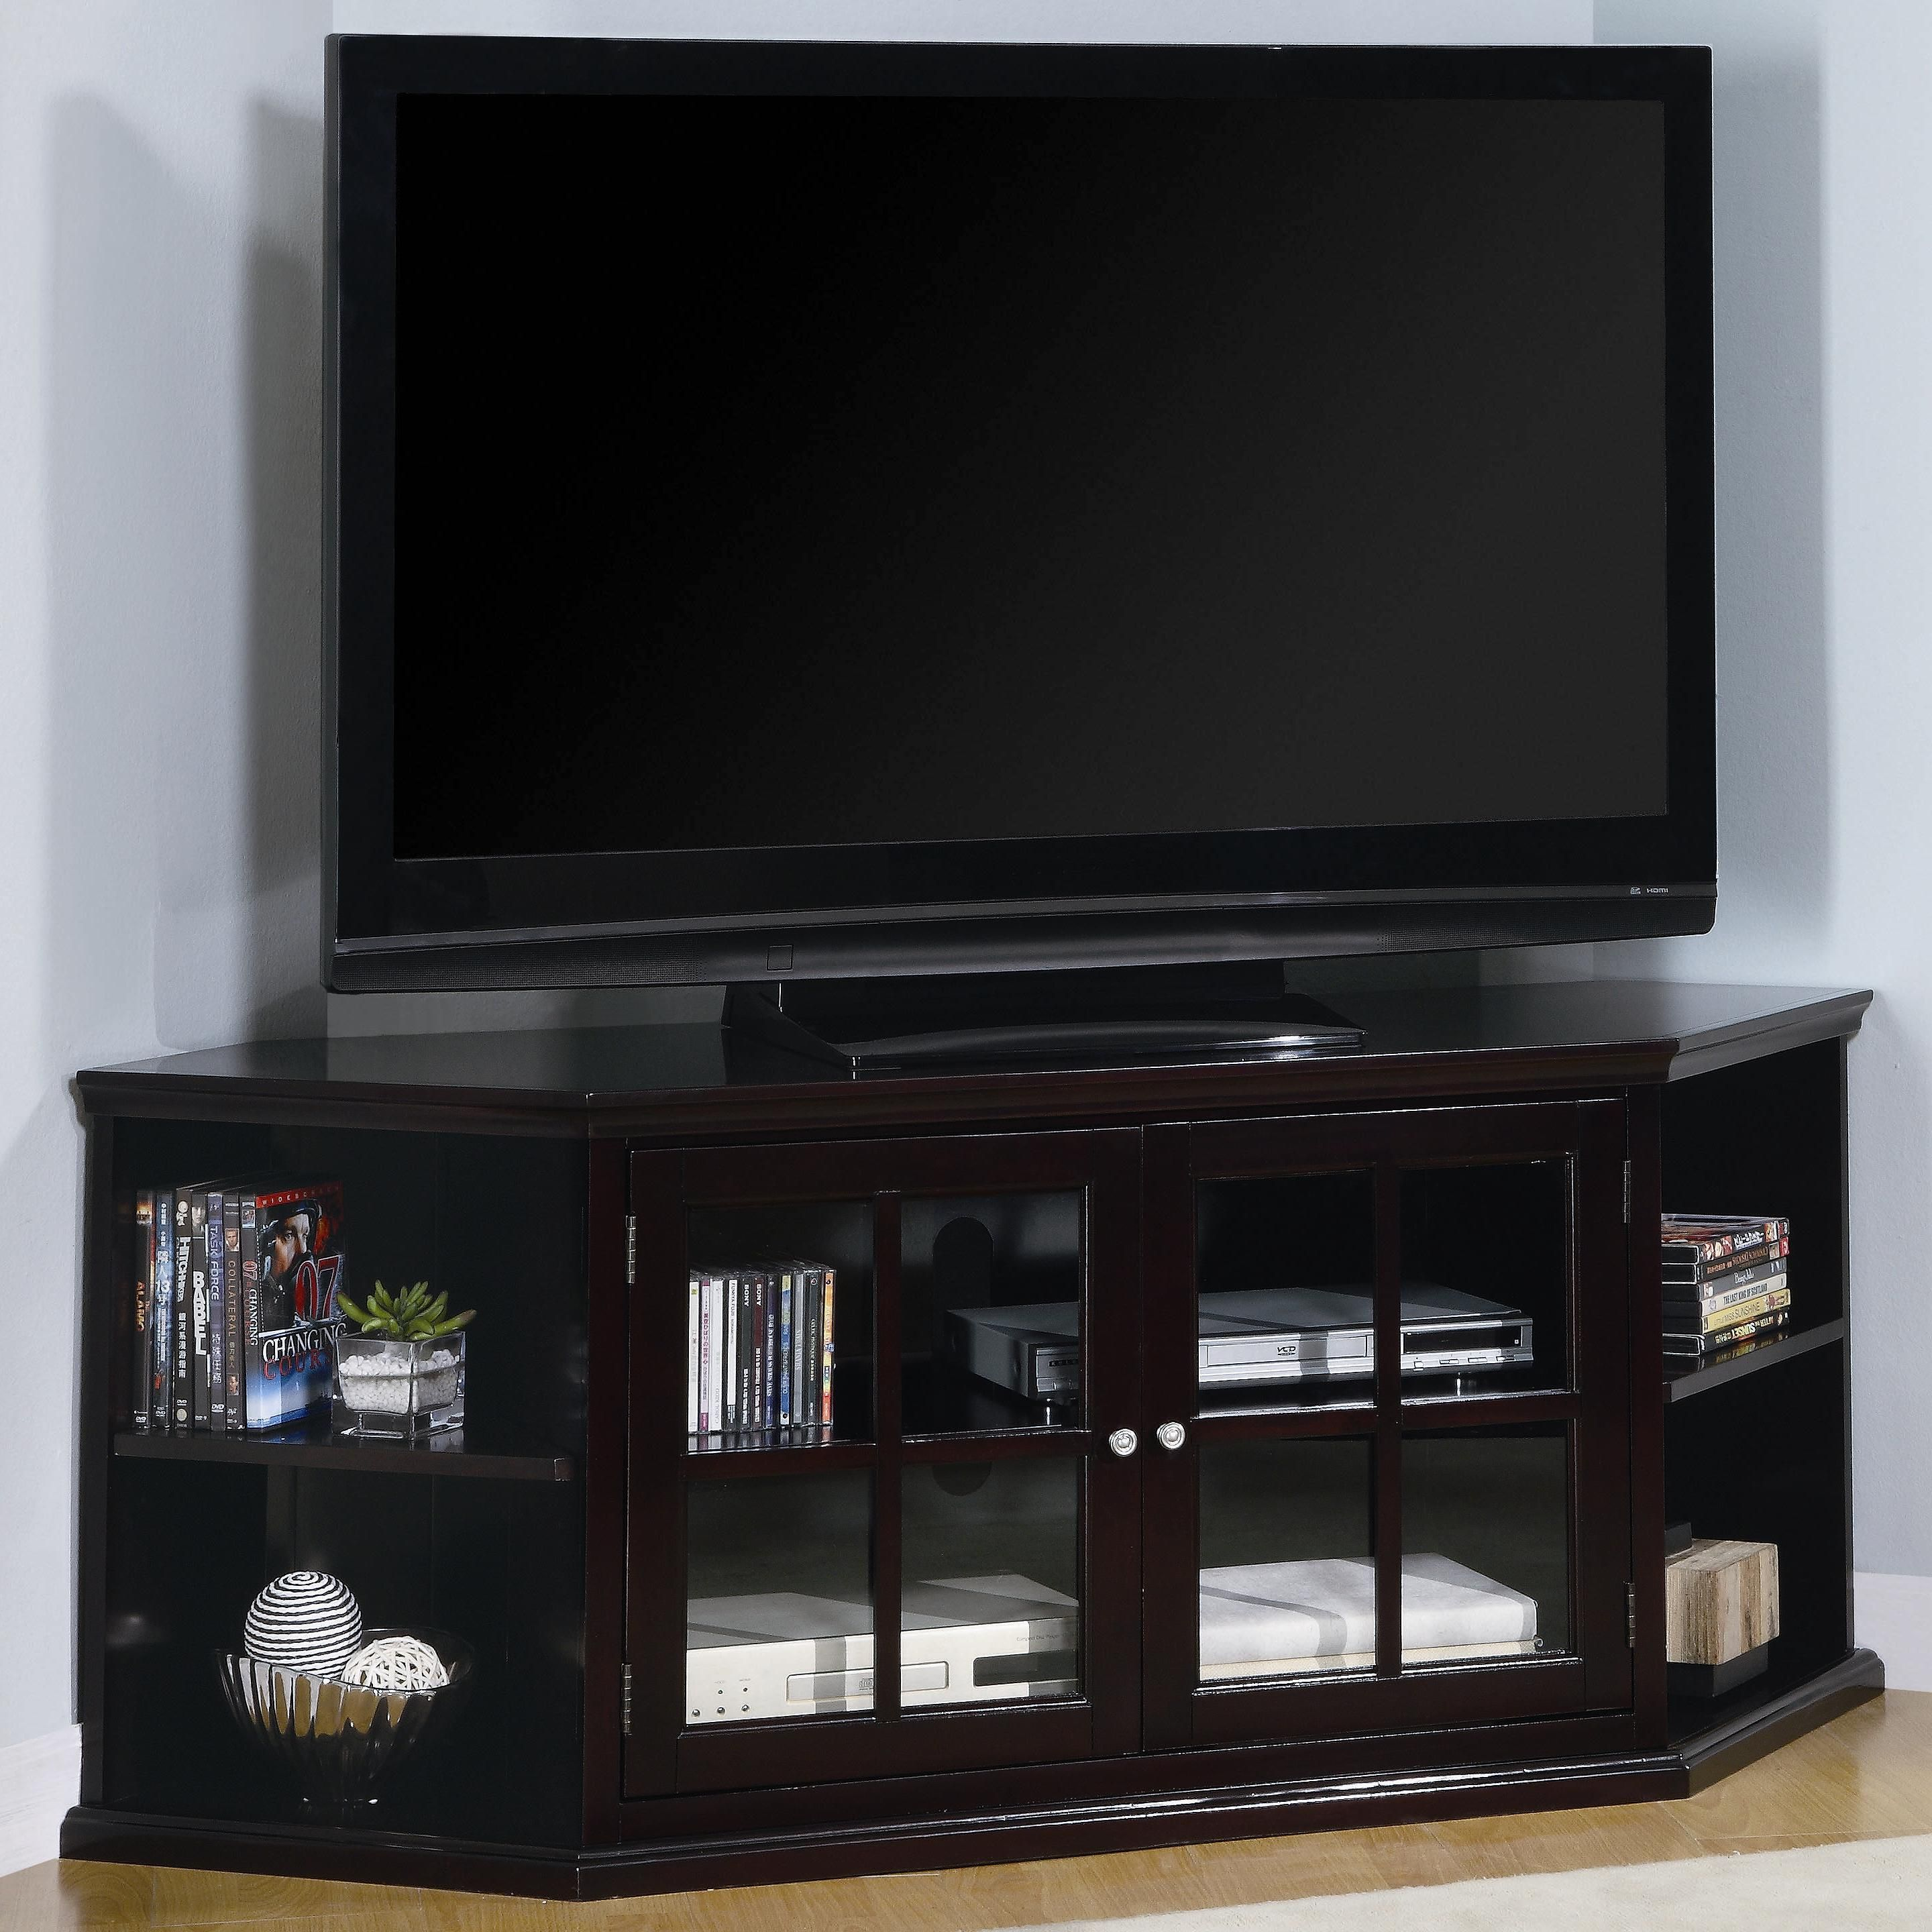 This Transitional Corner Tv Unit With Glass Doors Has Clean Simple